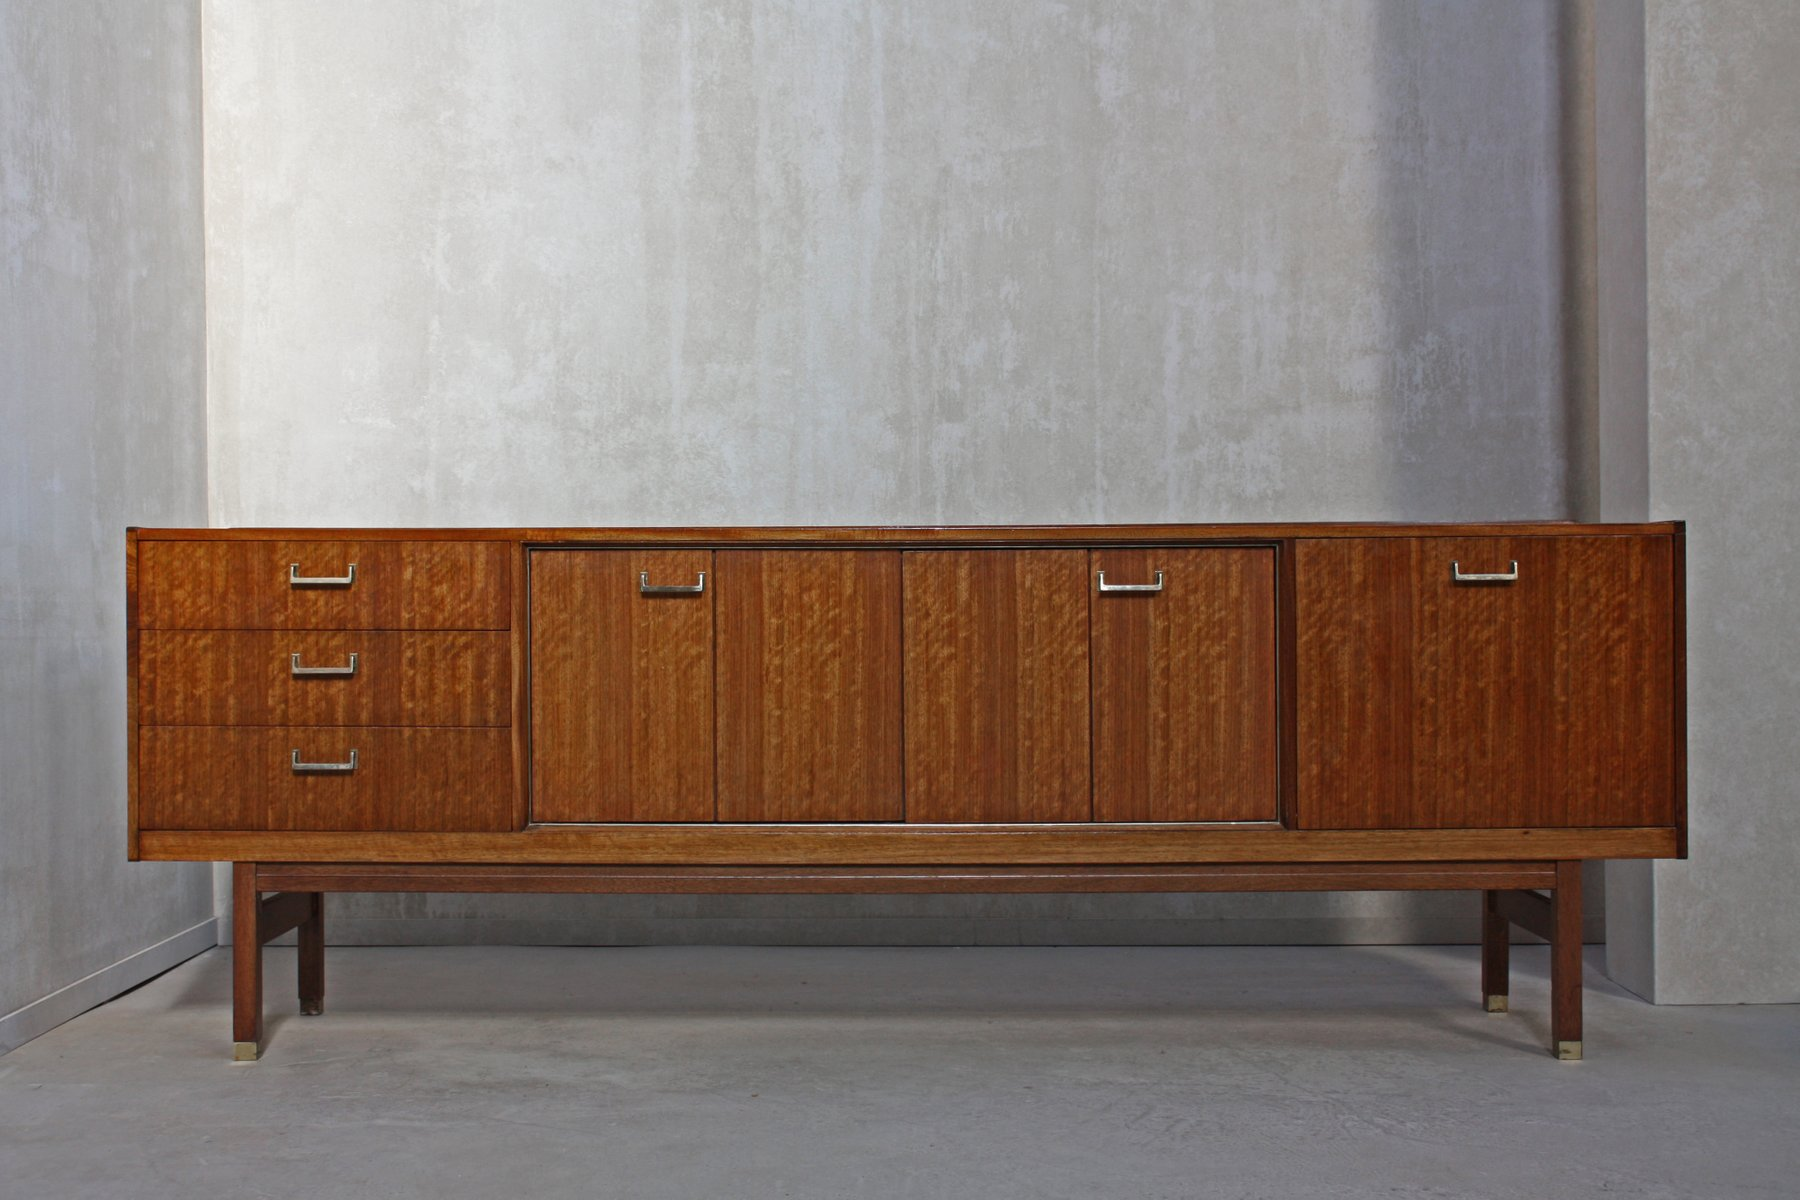 Mid century sideboard from e gomme 1960s for sale at pamono - Sideboard mid century ...